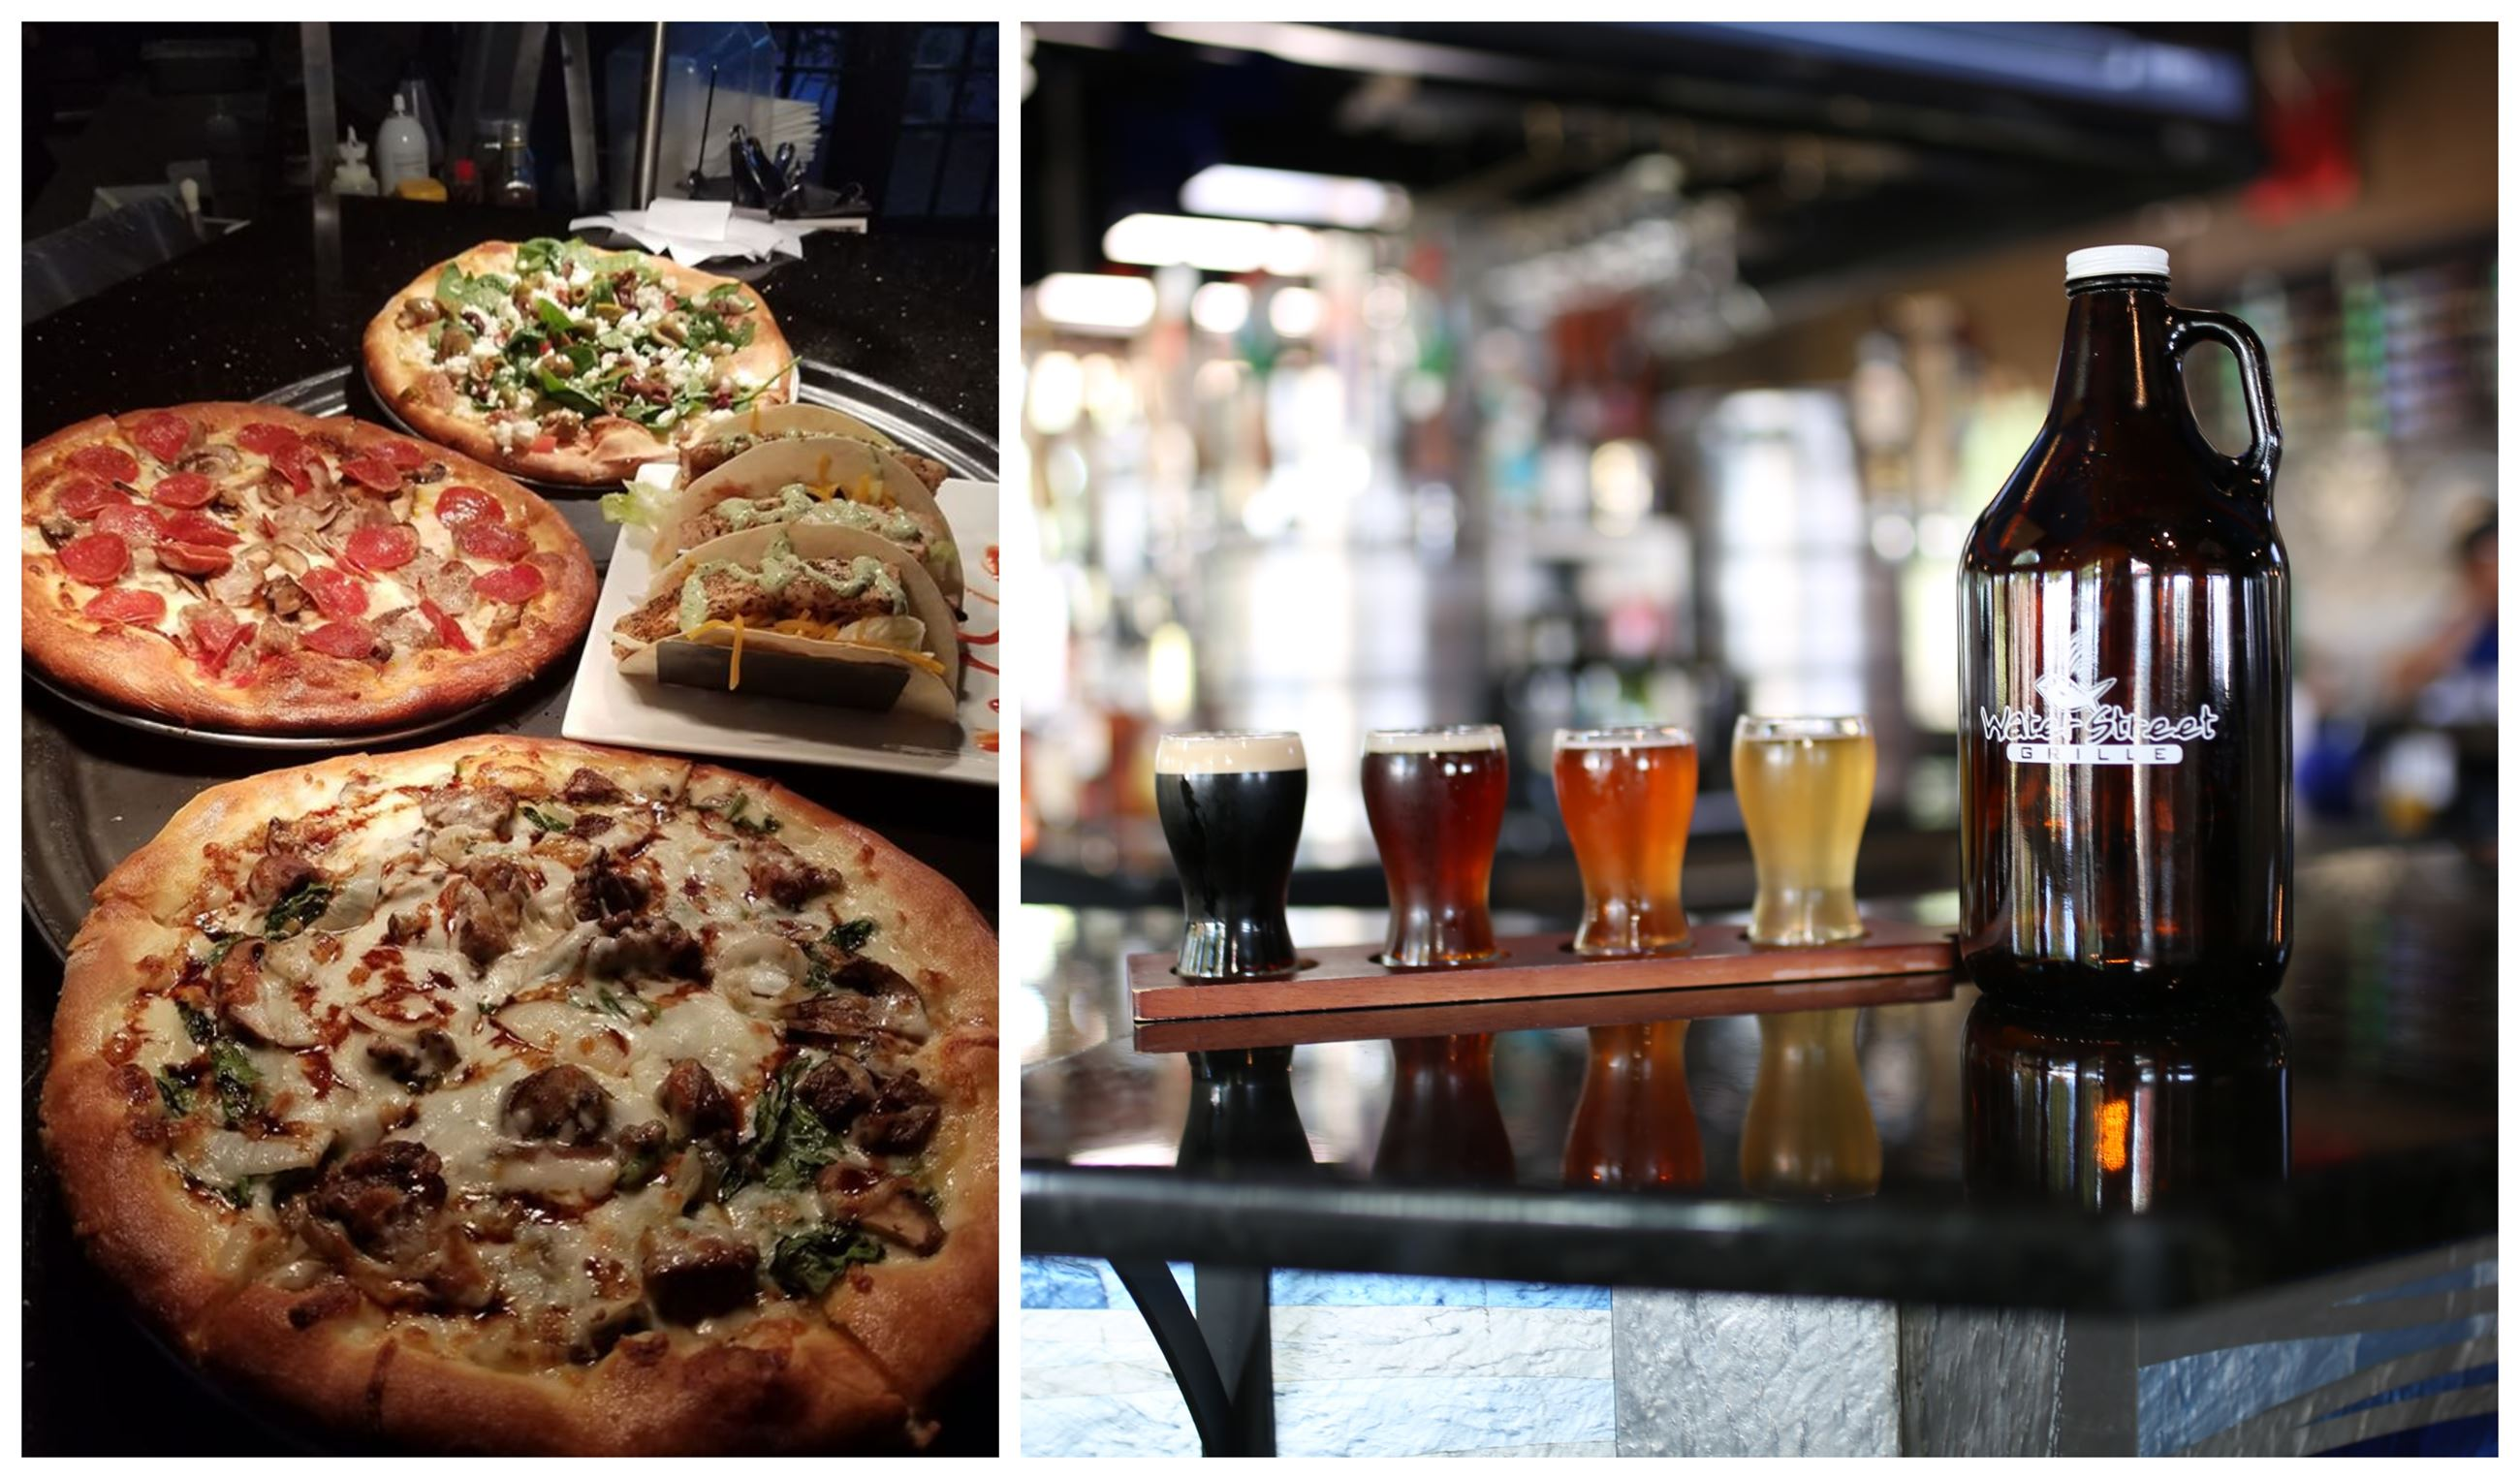 Water Street Grille Brick Oven Pizzas and Craft Beer